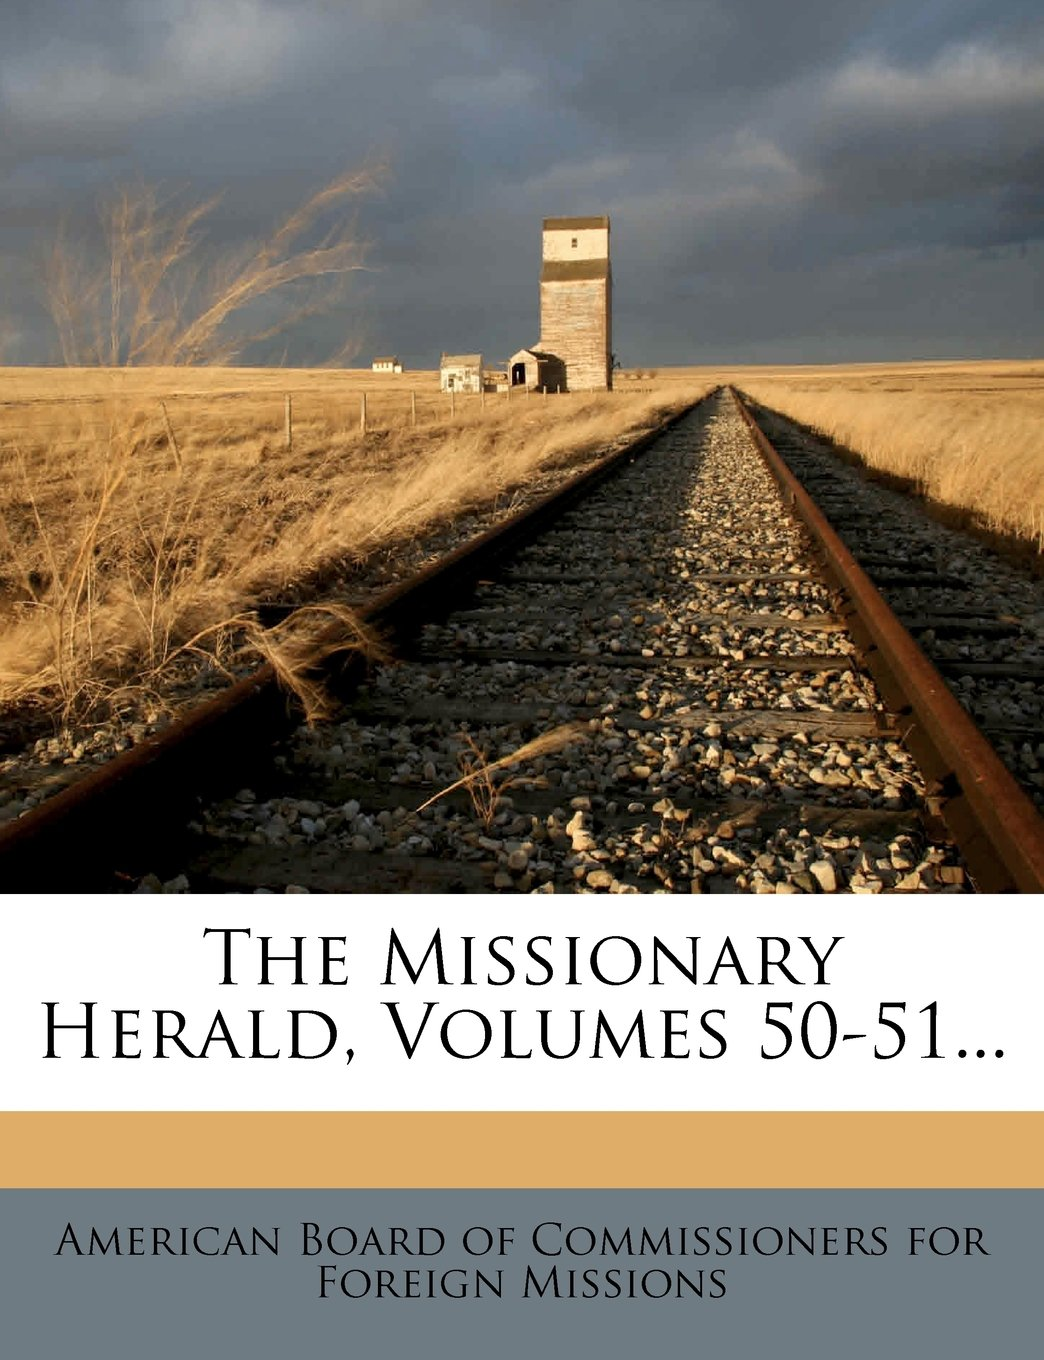 The Missionary Herald, Volumes 50-51... PDF